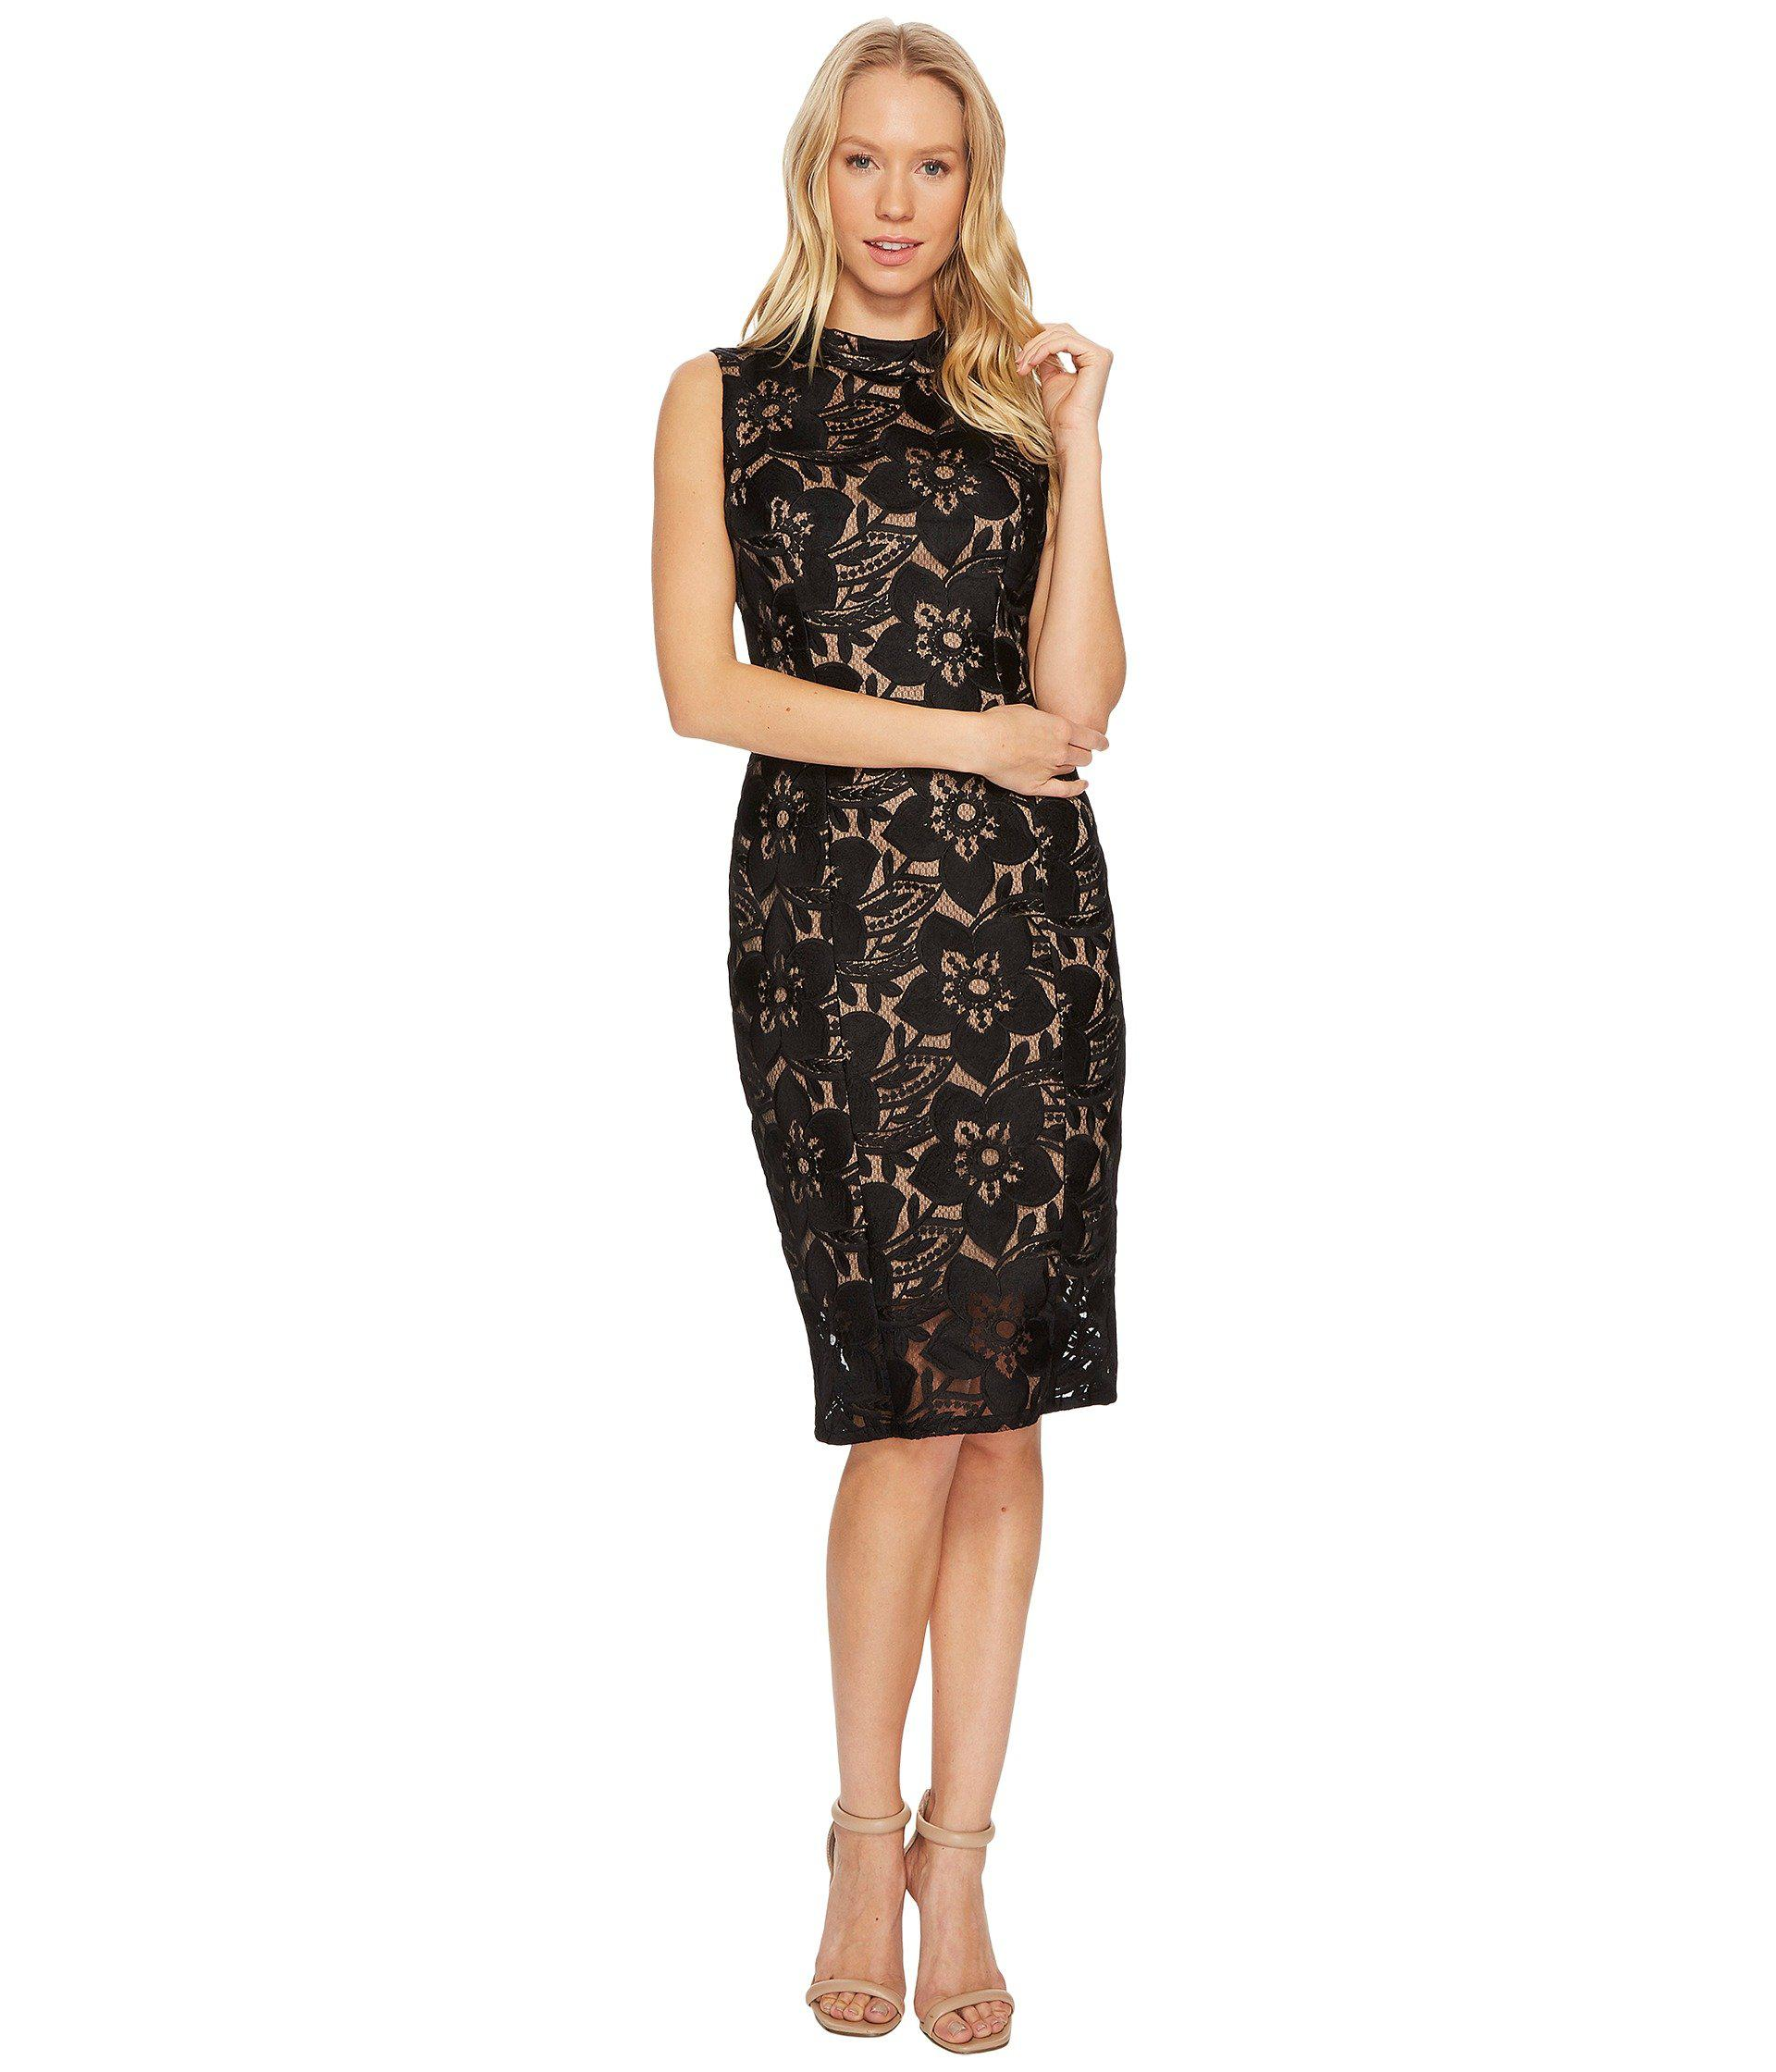 62ece46e Lyst - Adrianna Papell Lace Mock Neck Sheath Dress in Black - Save 42%